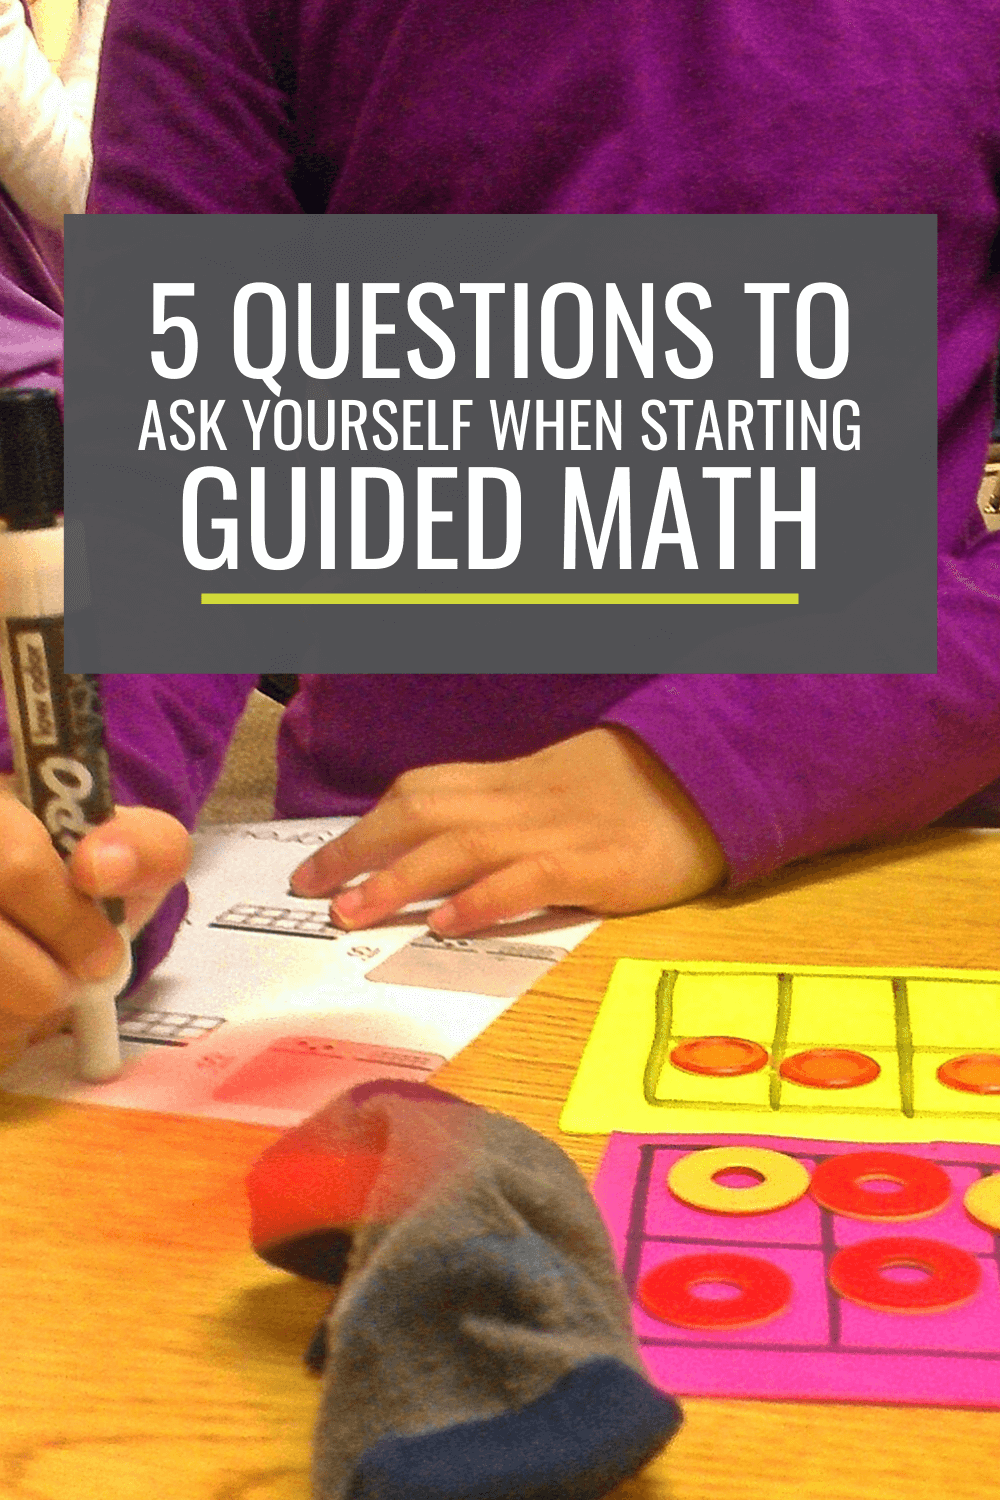 5 Questions to Ask Yourself When Getting Started With Guided Math